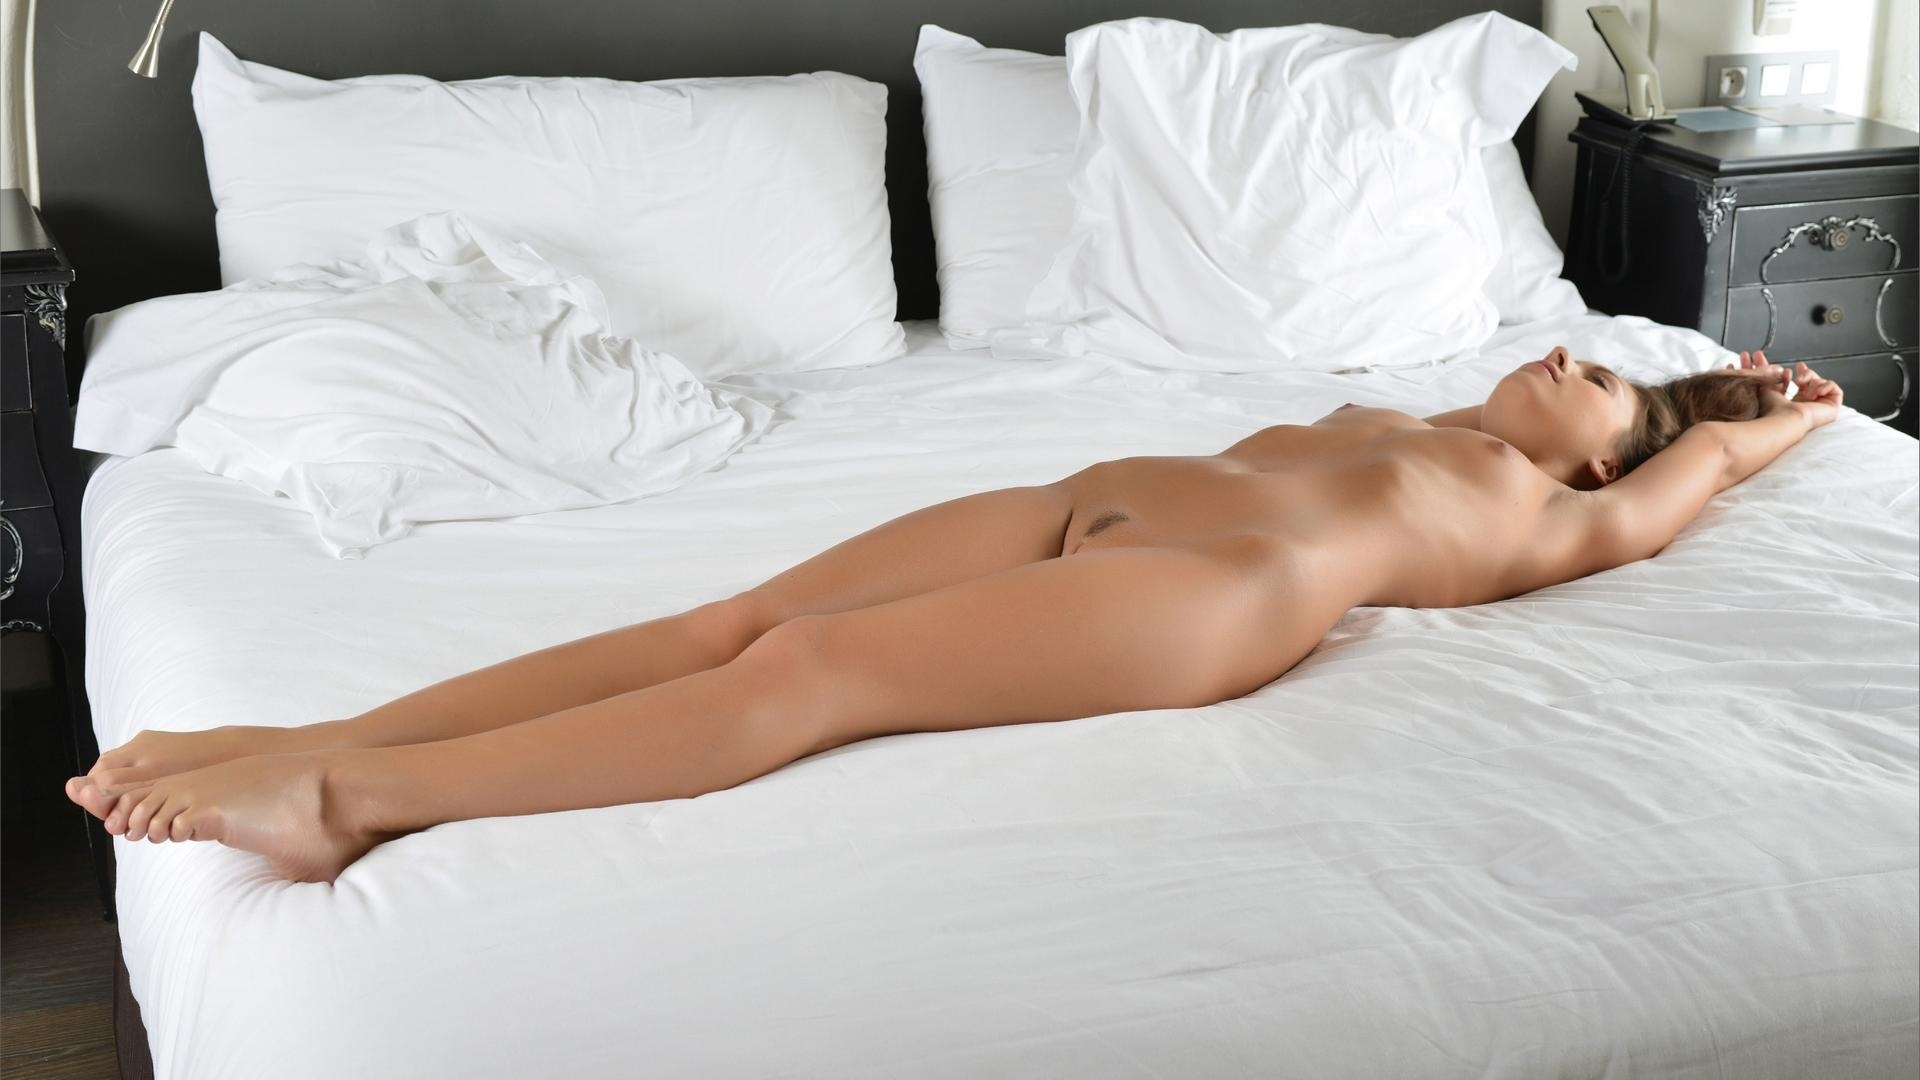 girls-nude-on-bed